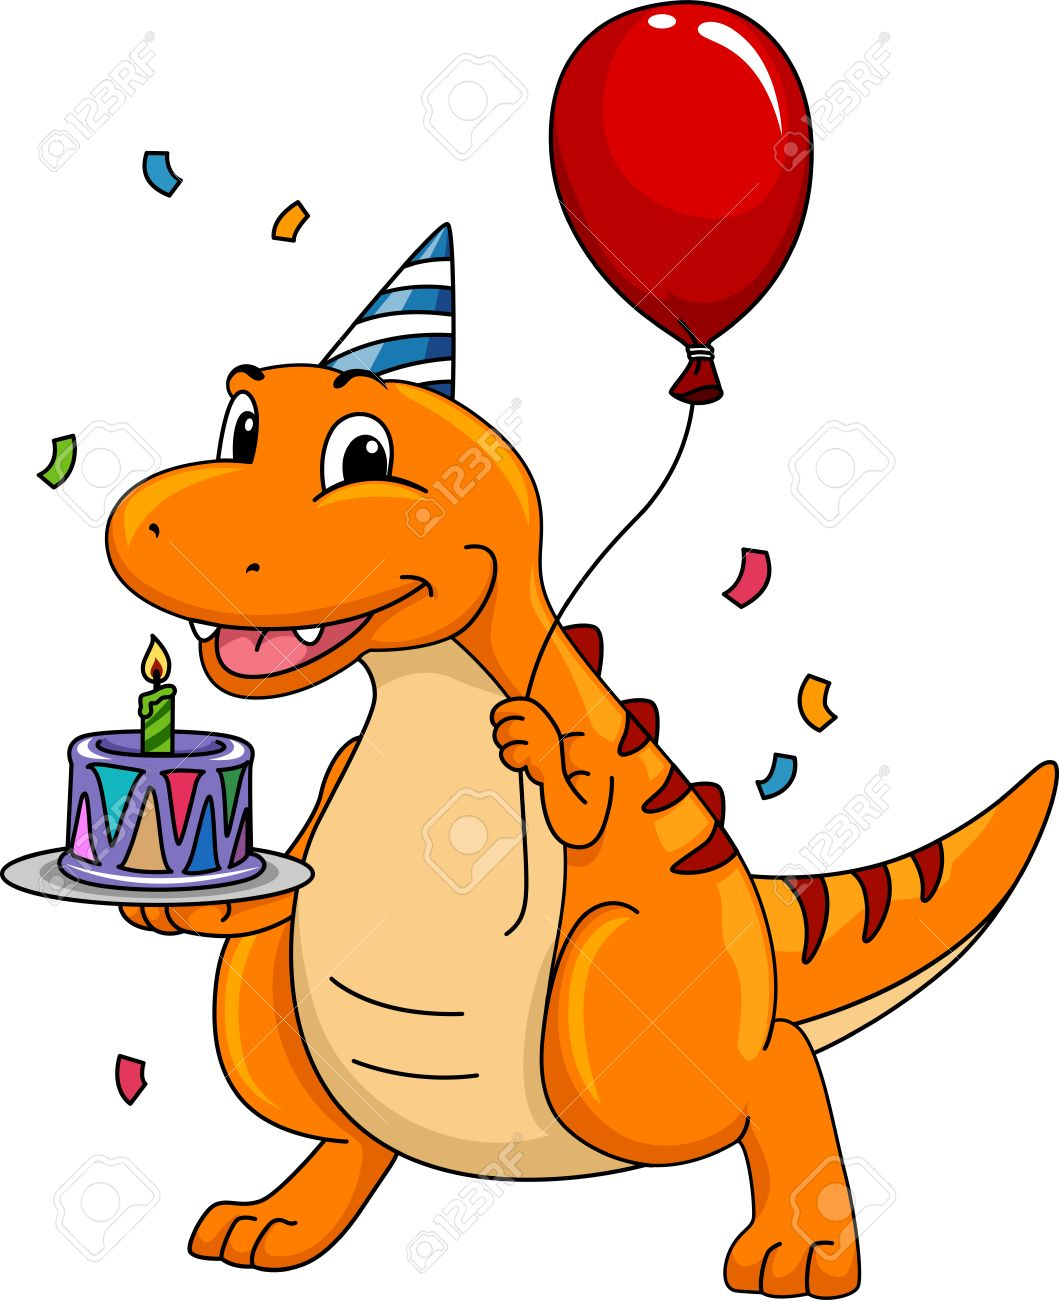 Mascot Illustration Featuring A Dinosaur Carrying A Birthday